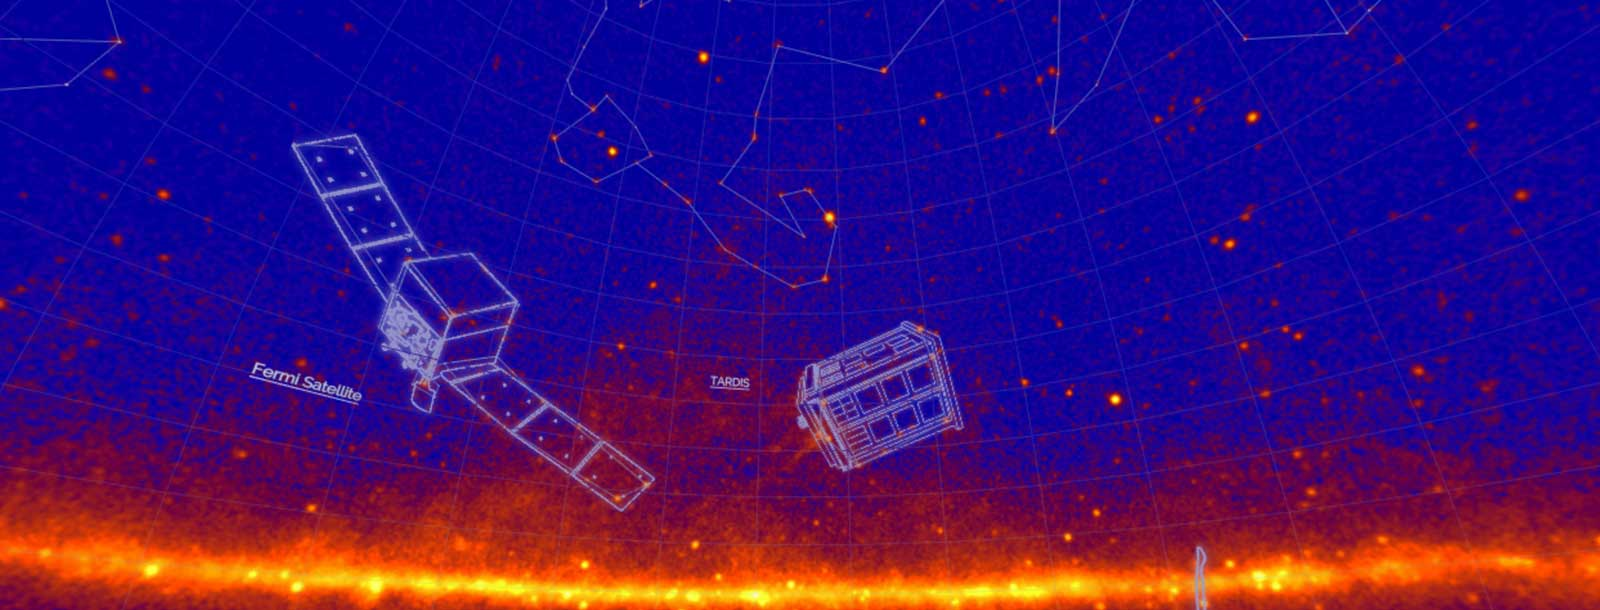 New, unofficial constellations appear in this image of the sky mapped by NASA's Fermi Gamma-ray Space Telescope. Fermi scientists devised the constellations to highlight the mission's 10th year of operations. Fermi has mapped about 3,000 gamma-ray sources — 10 times the number known before its launch and comparable to the number of bright stars in the traditional constellations. Credits: NASA